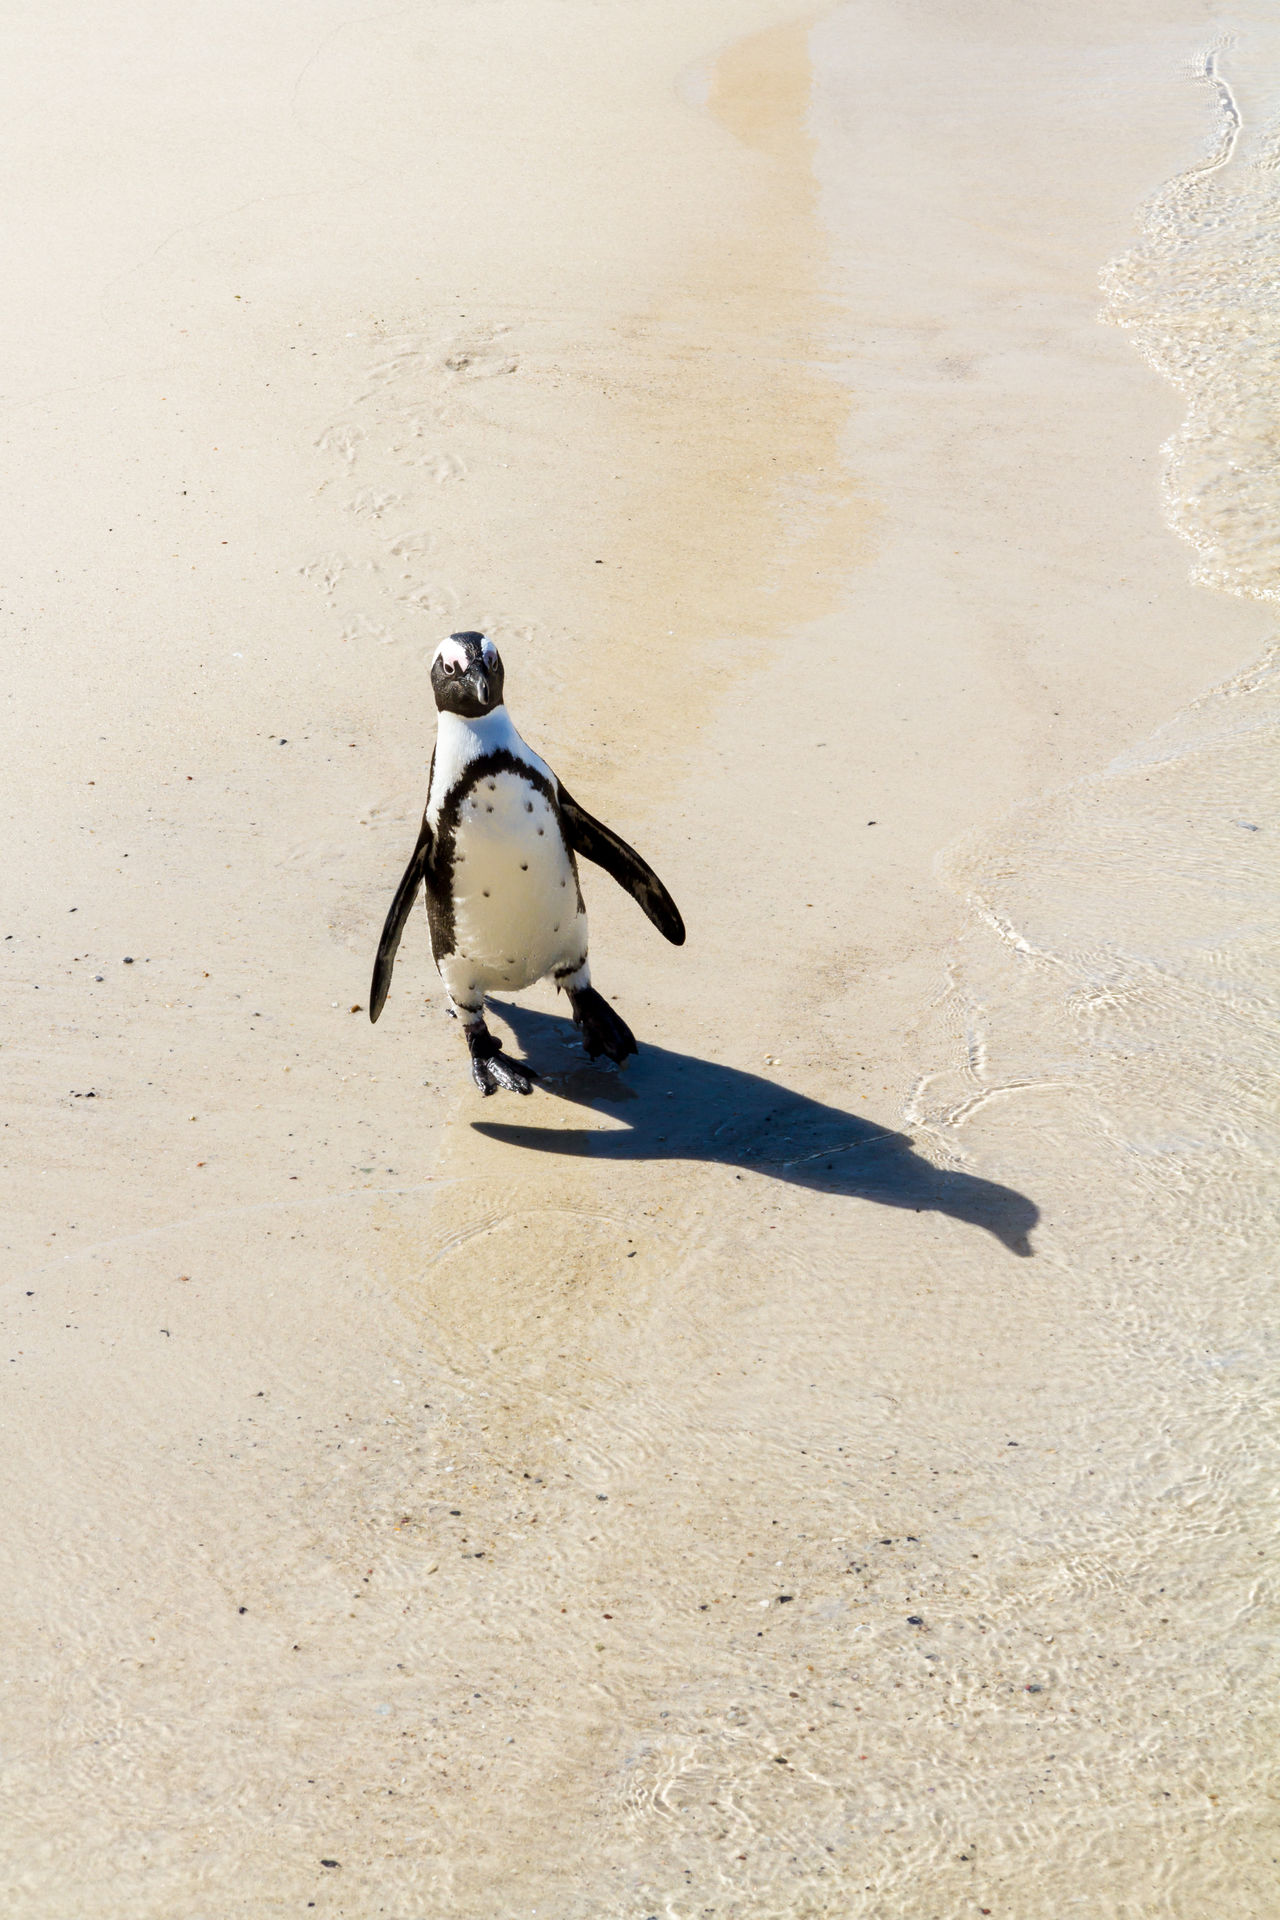 An African penguin waddling along the beach African Penguin Animal Themes Beach Bird Boulder Beach Cape Peninsula Day Flightless Flightless Bird Jackass Penguin Natural Habitat Nature No People One Animal Outdoors Penguin Sand Shadow Simons Town South Africa Vertical Waddling Wildlife Zoology